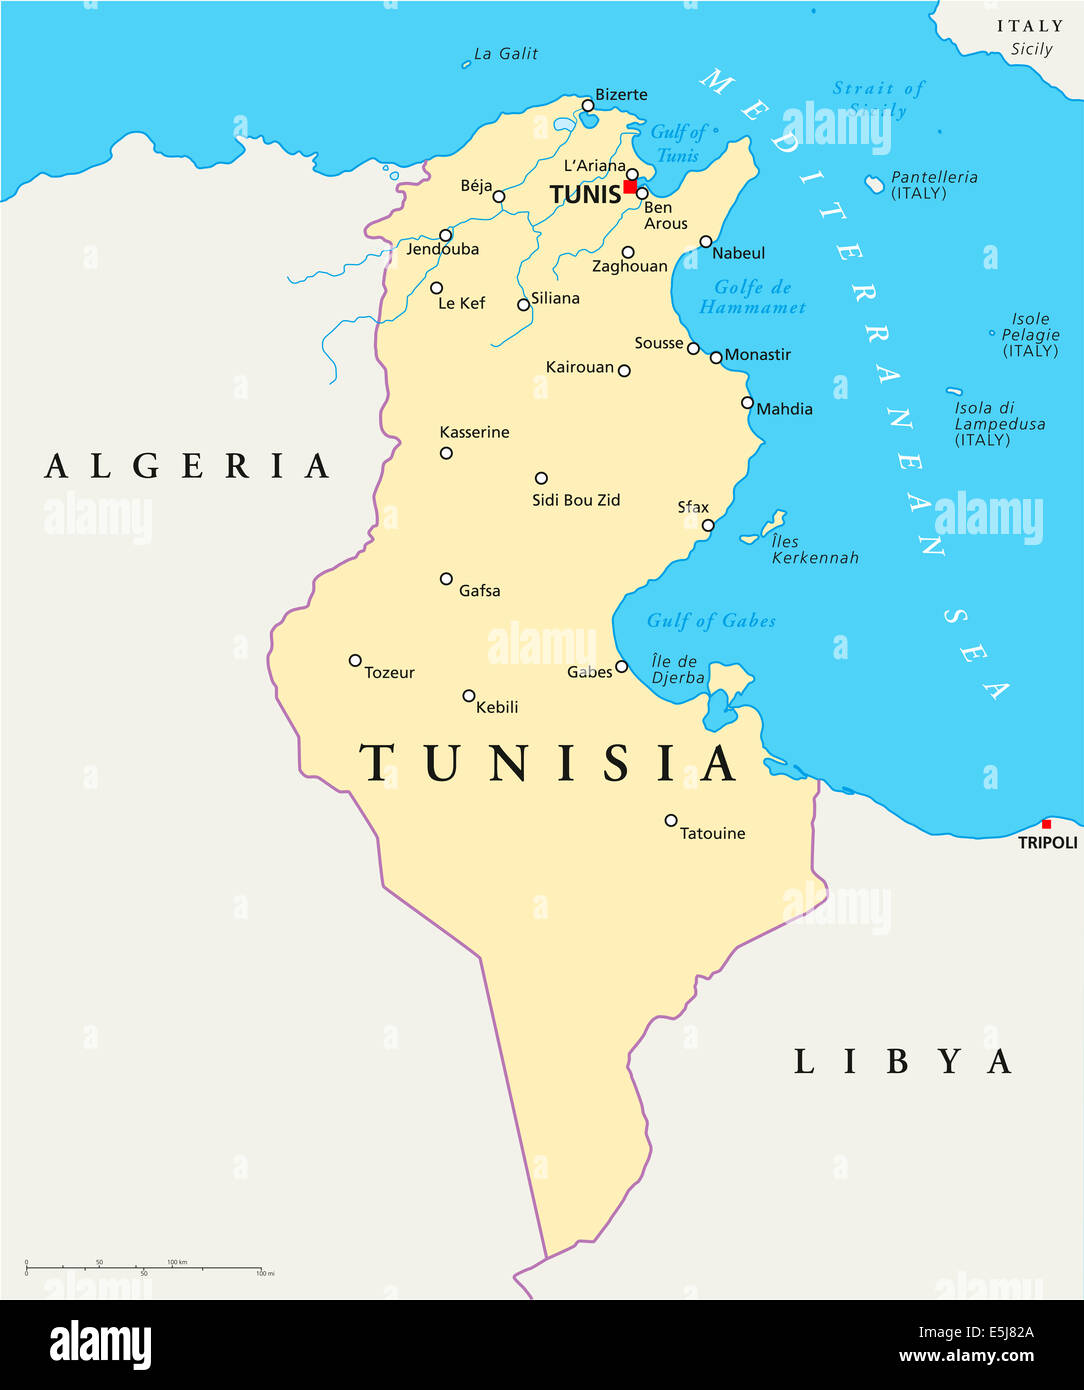 Tunisia Political Map With Capital Tunis National Borders Most - Map of tunisia